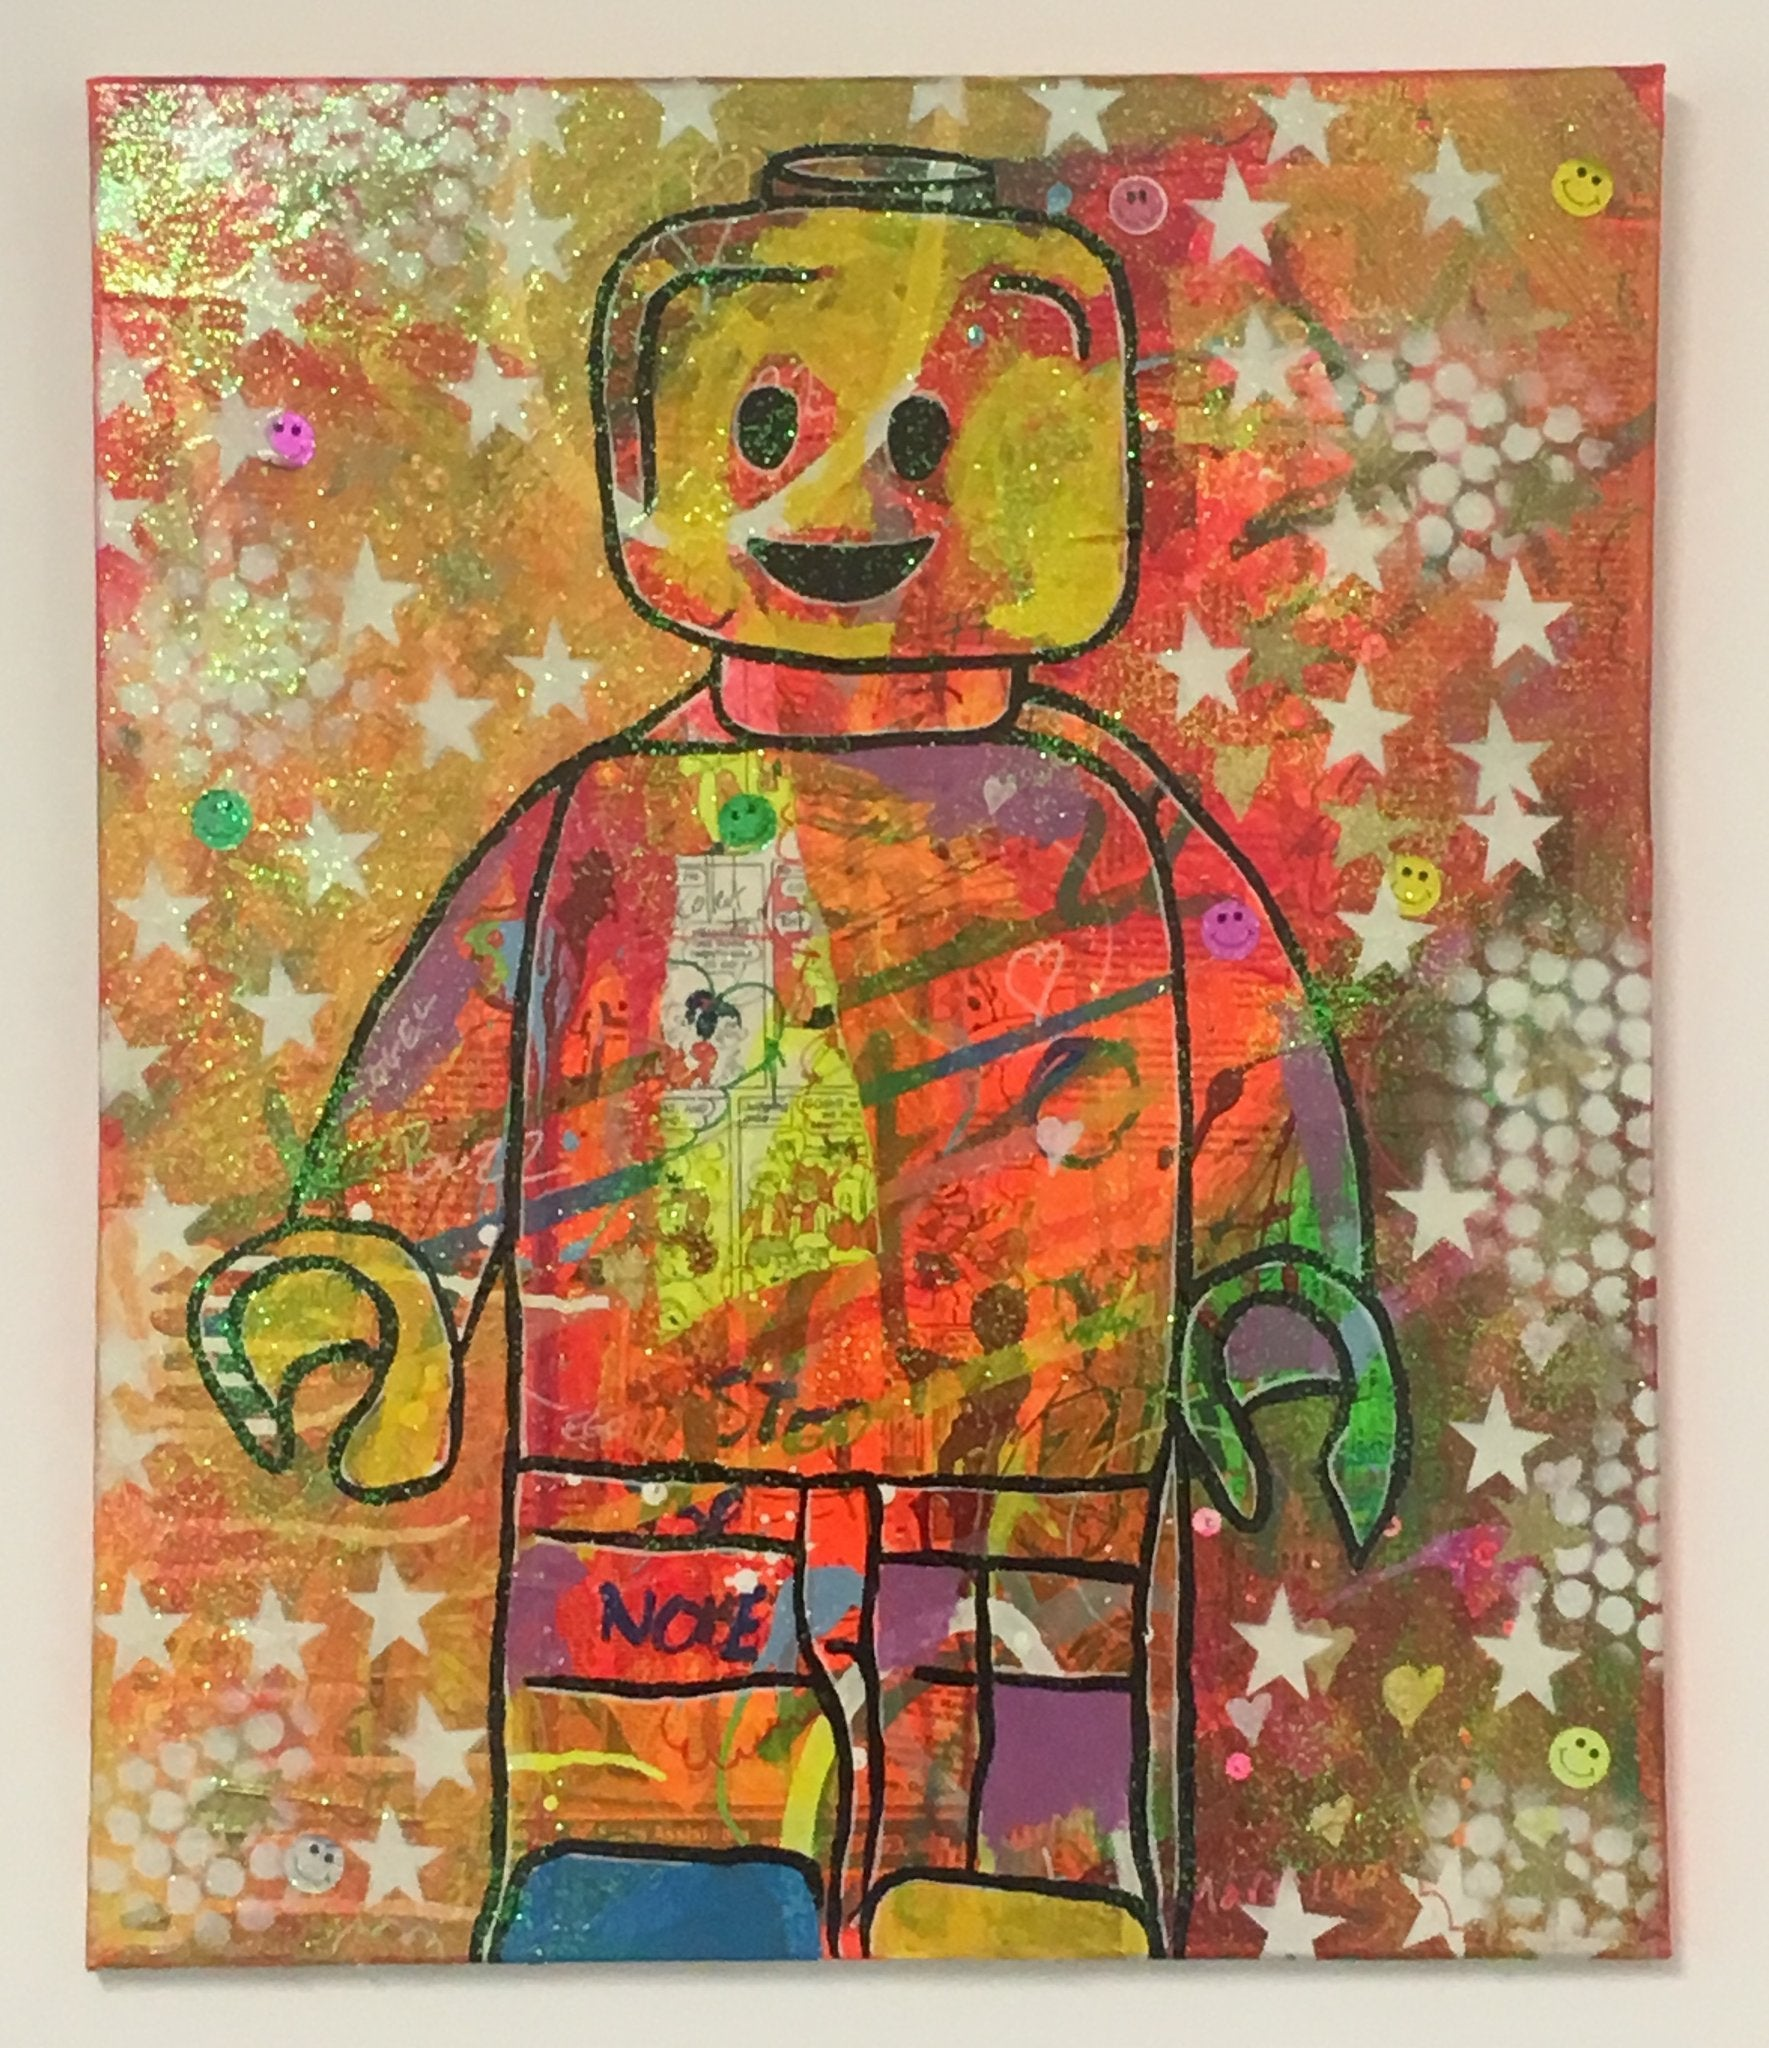 Sweet Melody by Barrie J Davies 2017, Mixed media on Canvas, 50cm x 60cm, unframed. Barrie J Davies is an Artist - Pop Art and Street art Artist based in Brighton England UK - Pop Art Paintings, Street Art Prints & Editions available.